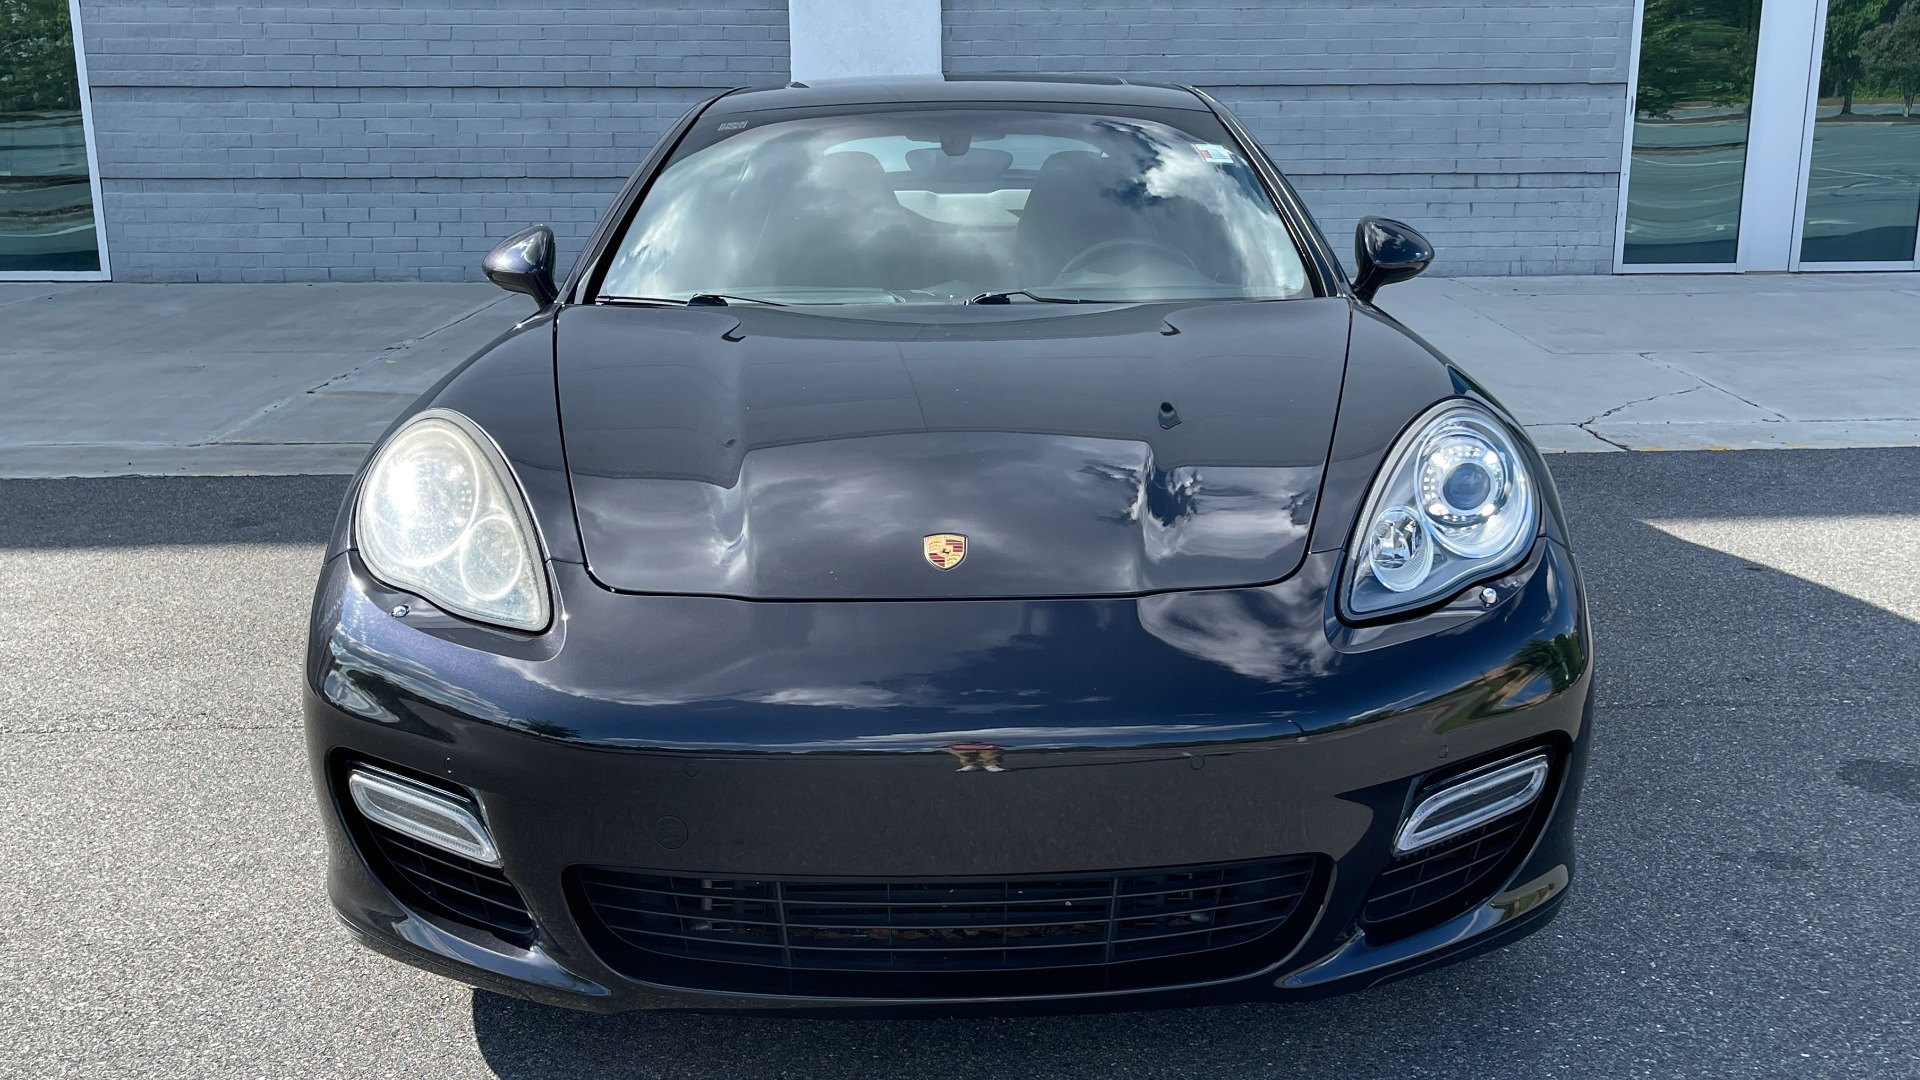 Used 2010 Porsche PANAMERA 4DR HB TURBO / SPORT CHRONO / BURMESTER / AUTO CLIMATE CONTROL for sale $40,995 at Formula Imports in Charlotte NC 28227 21